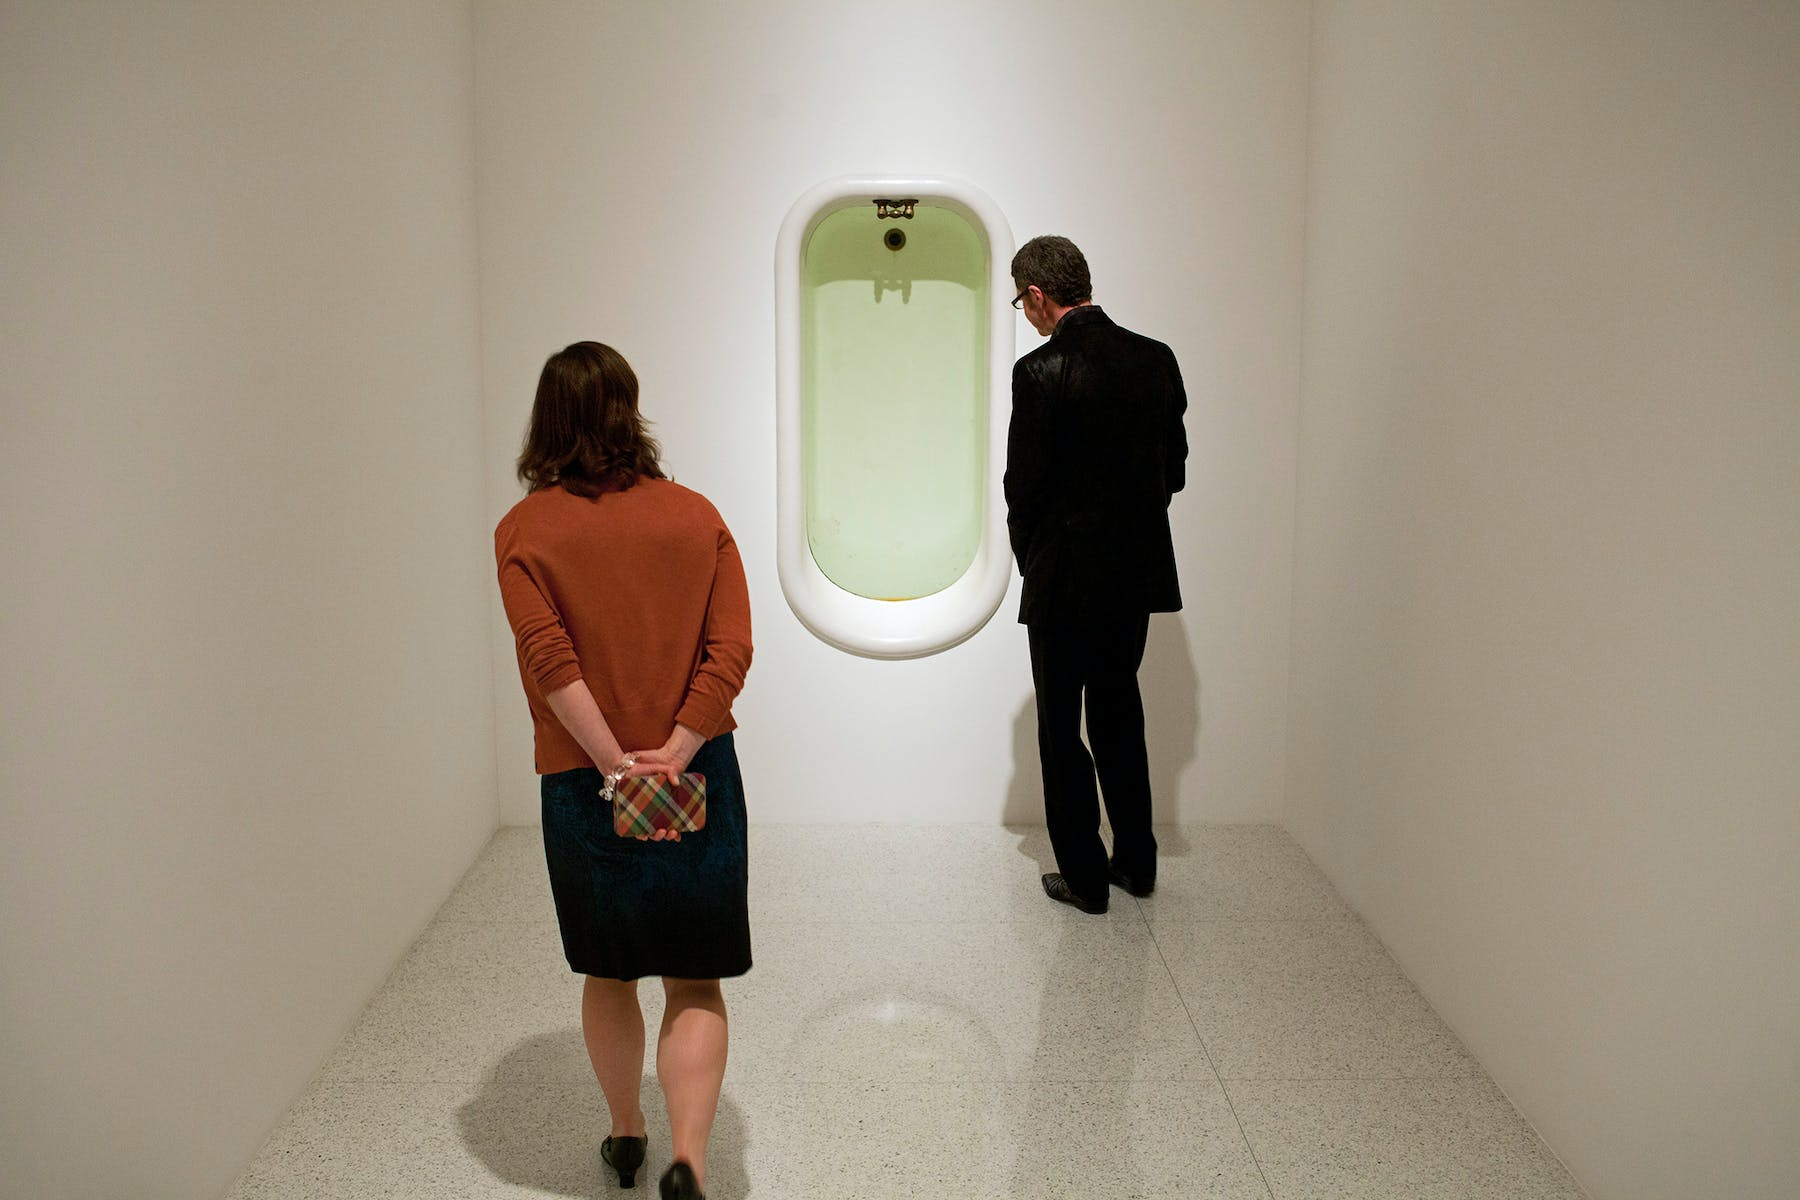 In the exhibition Lifelike, works based on everyday objects invoked a dreamlike world, such as Charles Ray's Bath (1989)—a liquid-filled sculpture embedded in the wall that elicits a feeling of hovering above it.